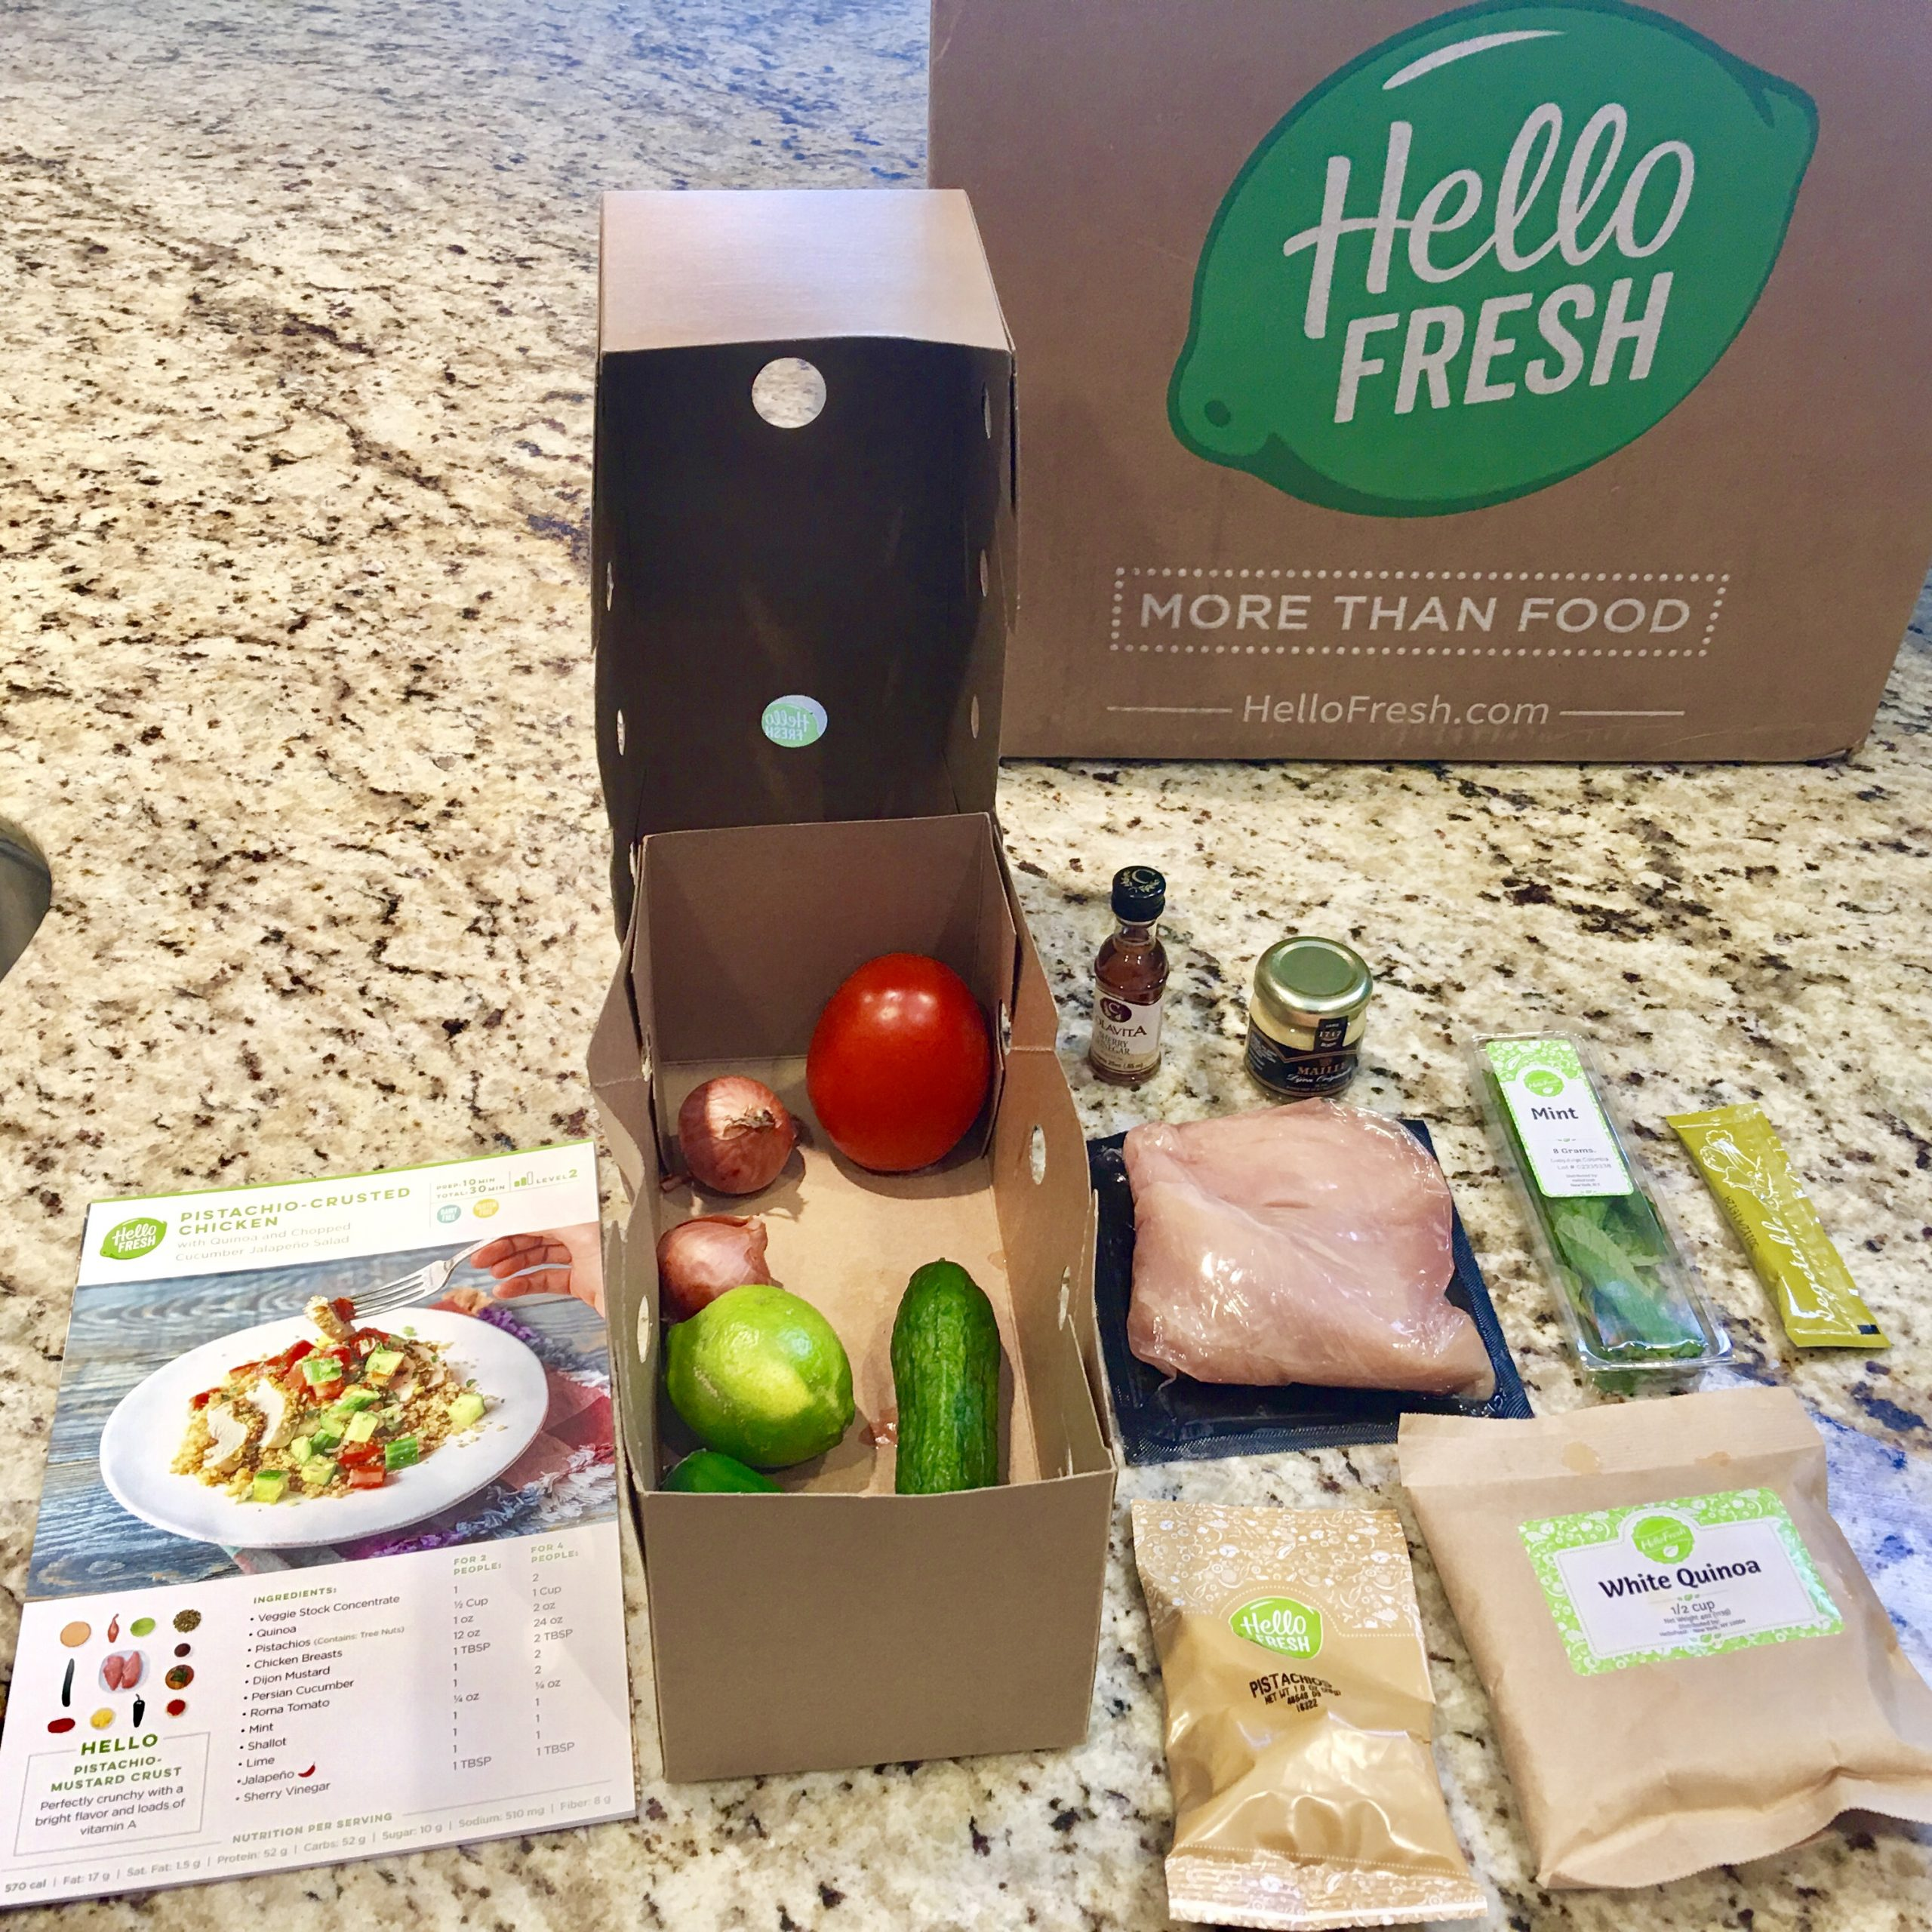 Extended Warranty Cost Hellofresh